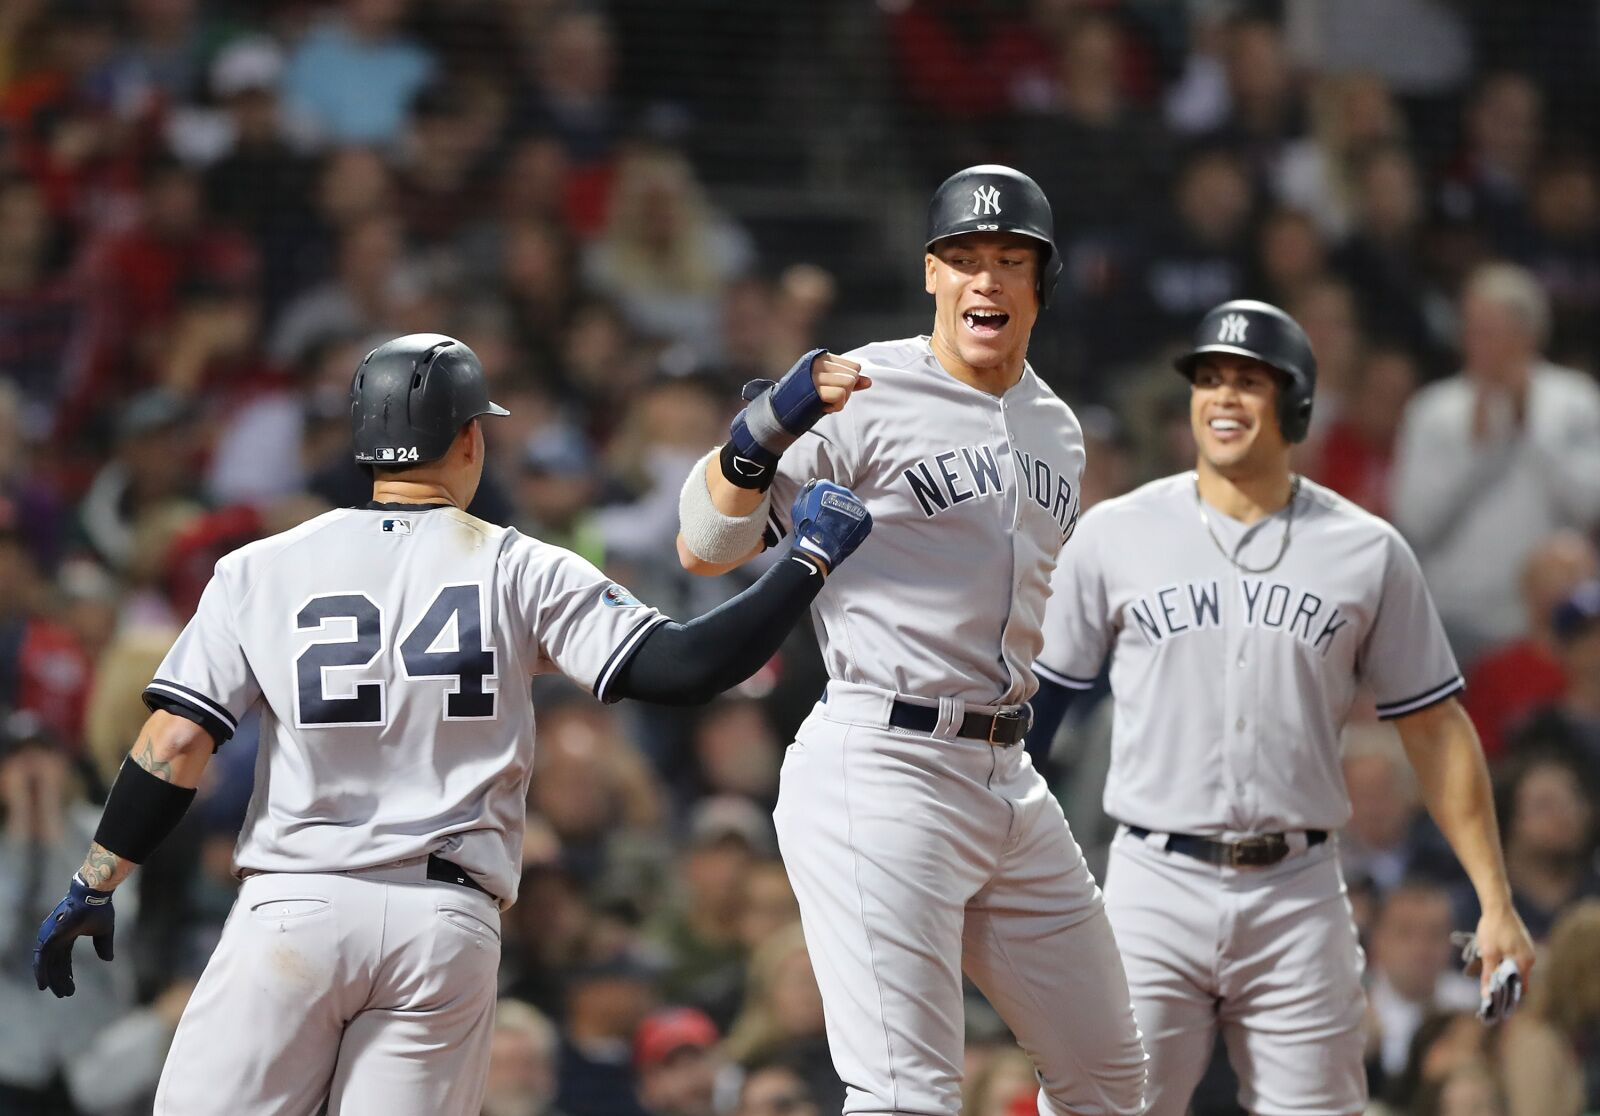 Yankees: What should the lineup look like when Aaron Judge comes back?